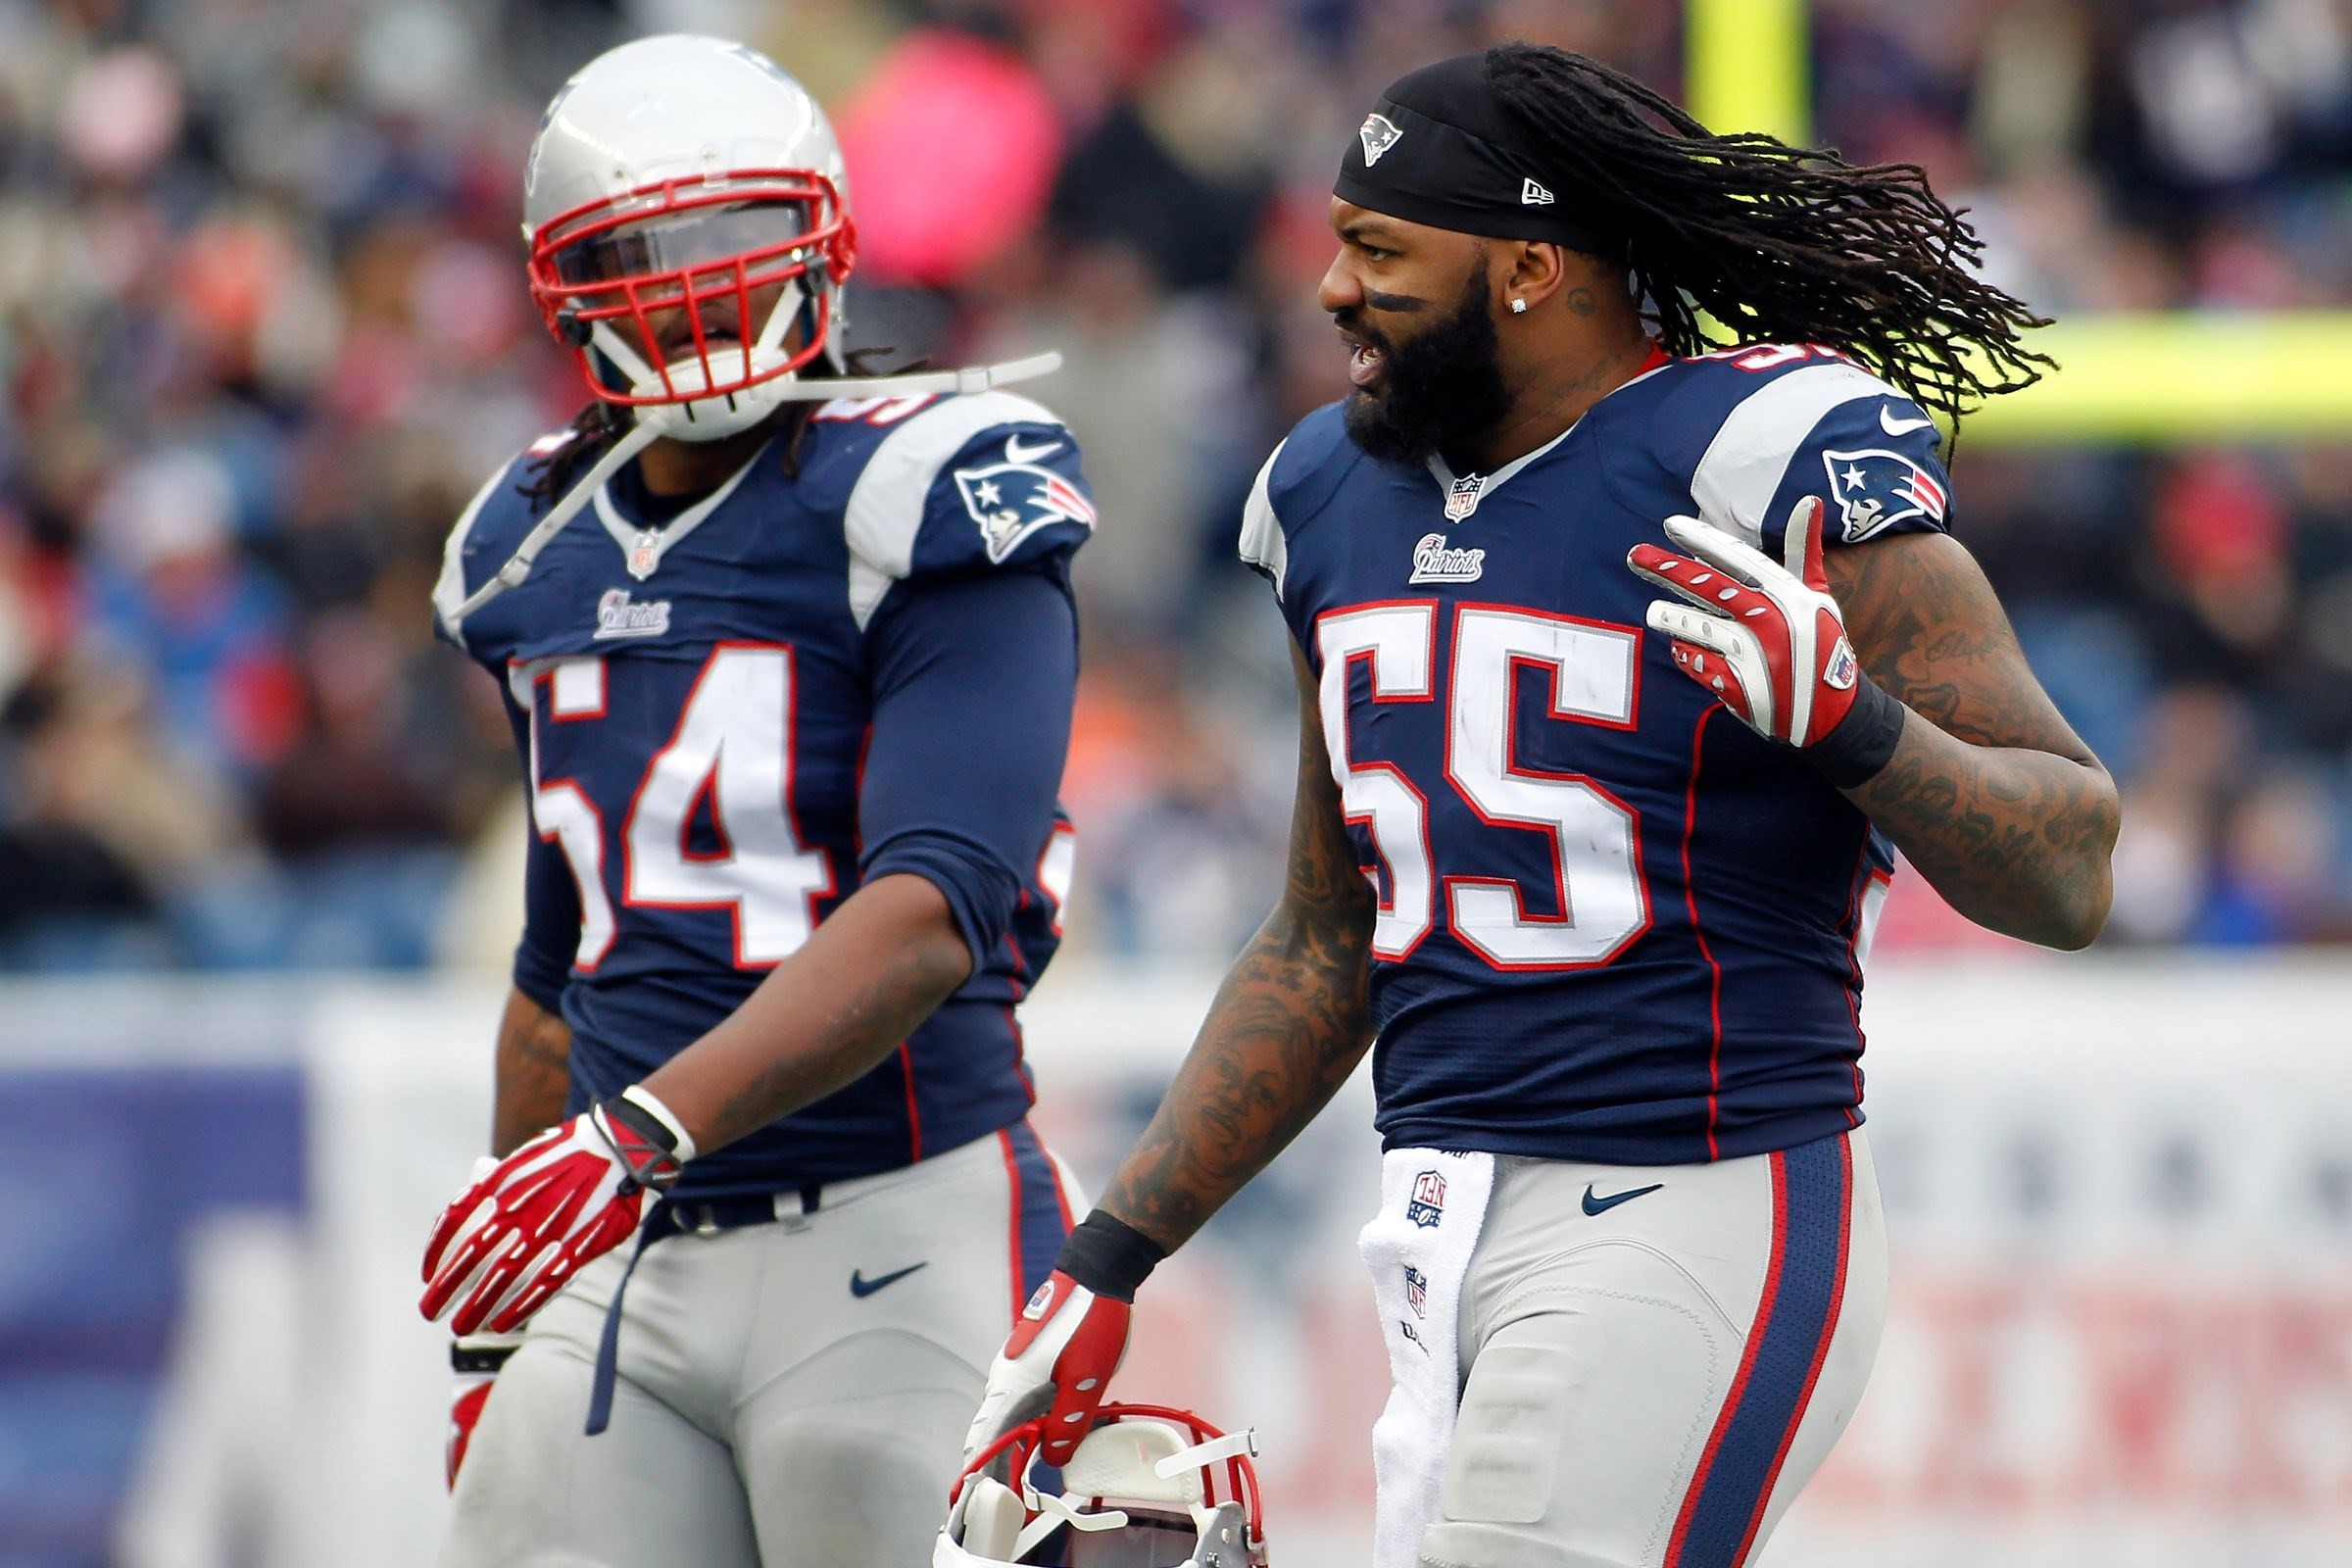 new england patriots image – Full HD Wallpapers, Photos (Halle Murphy  2400×1600)